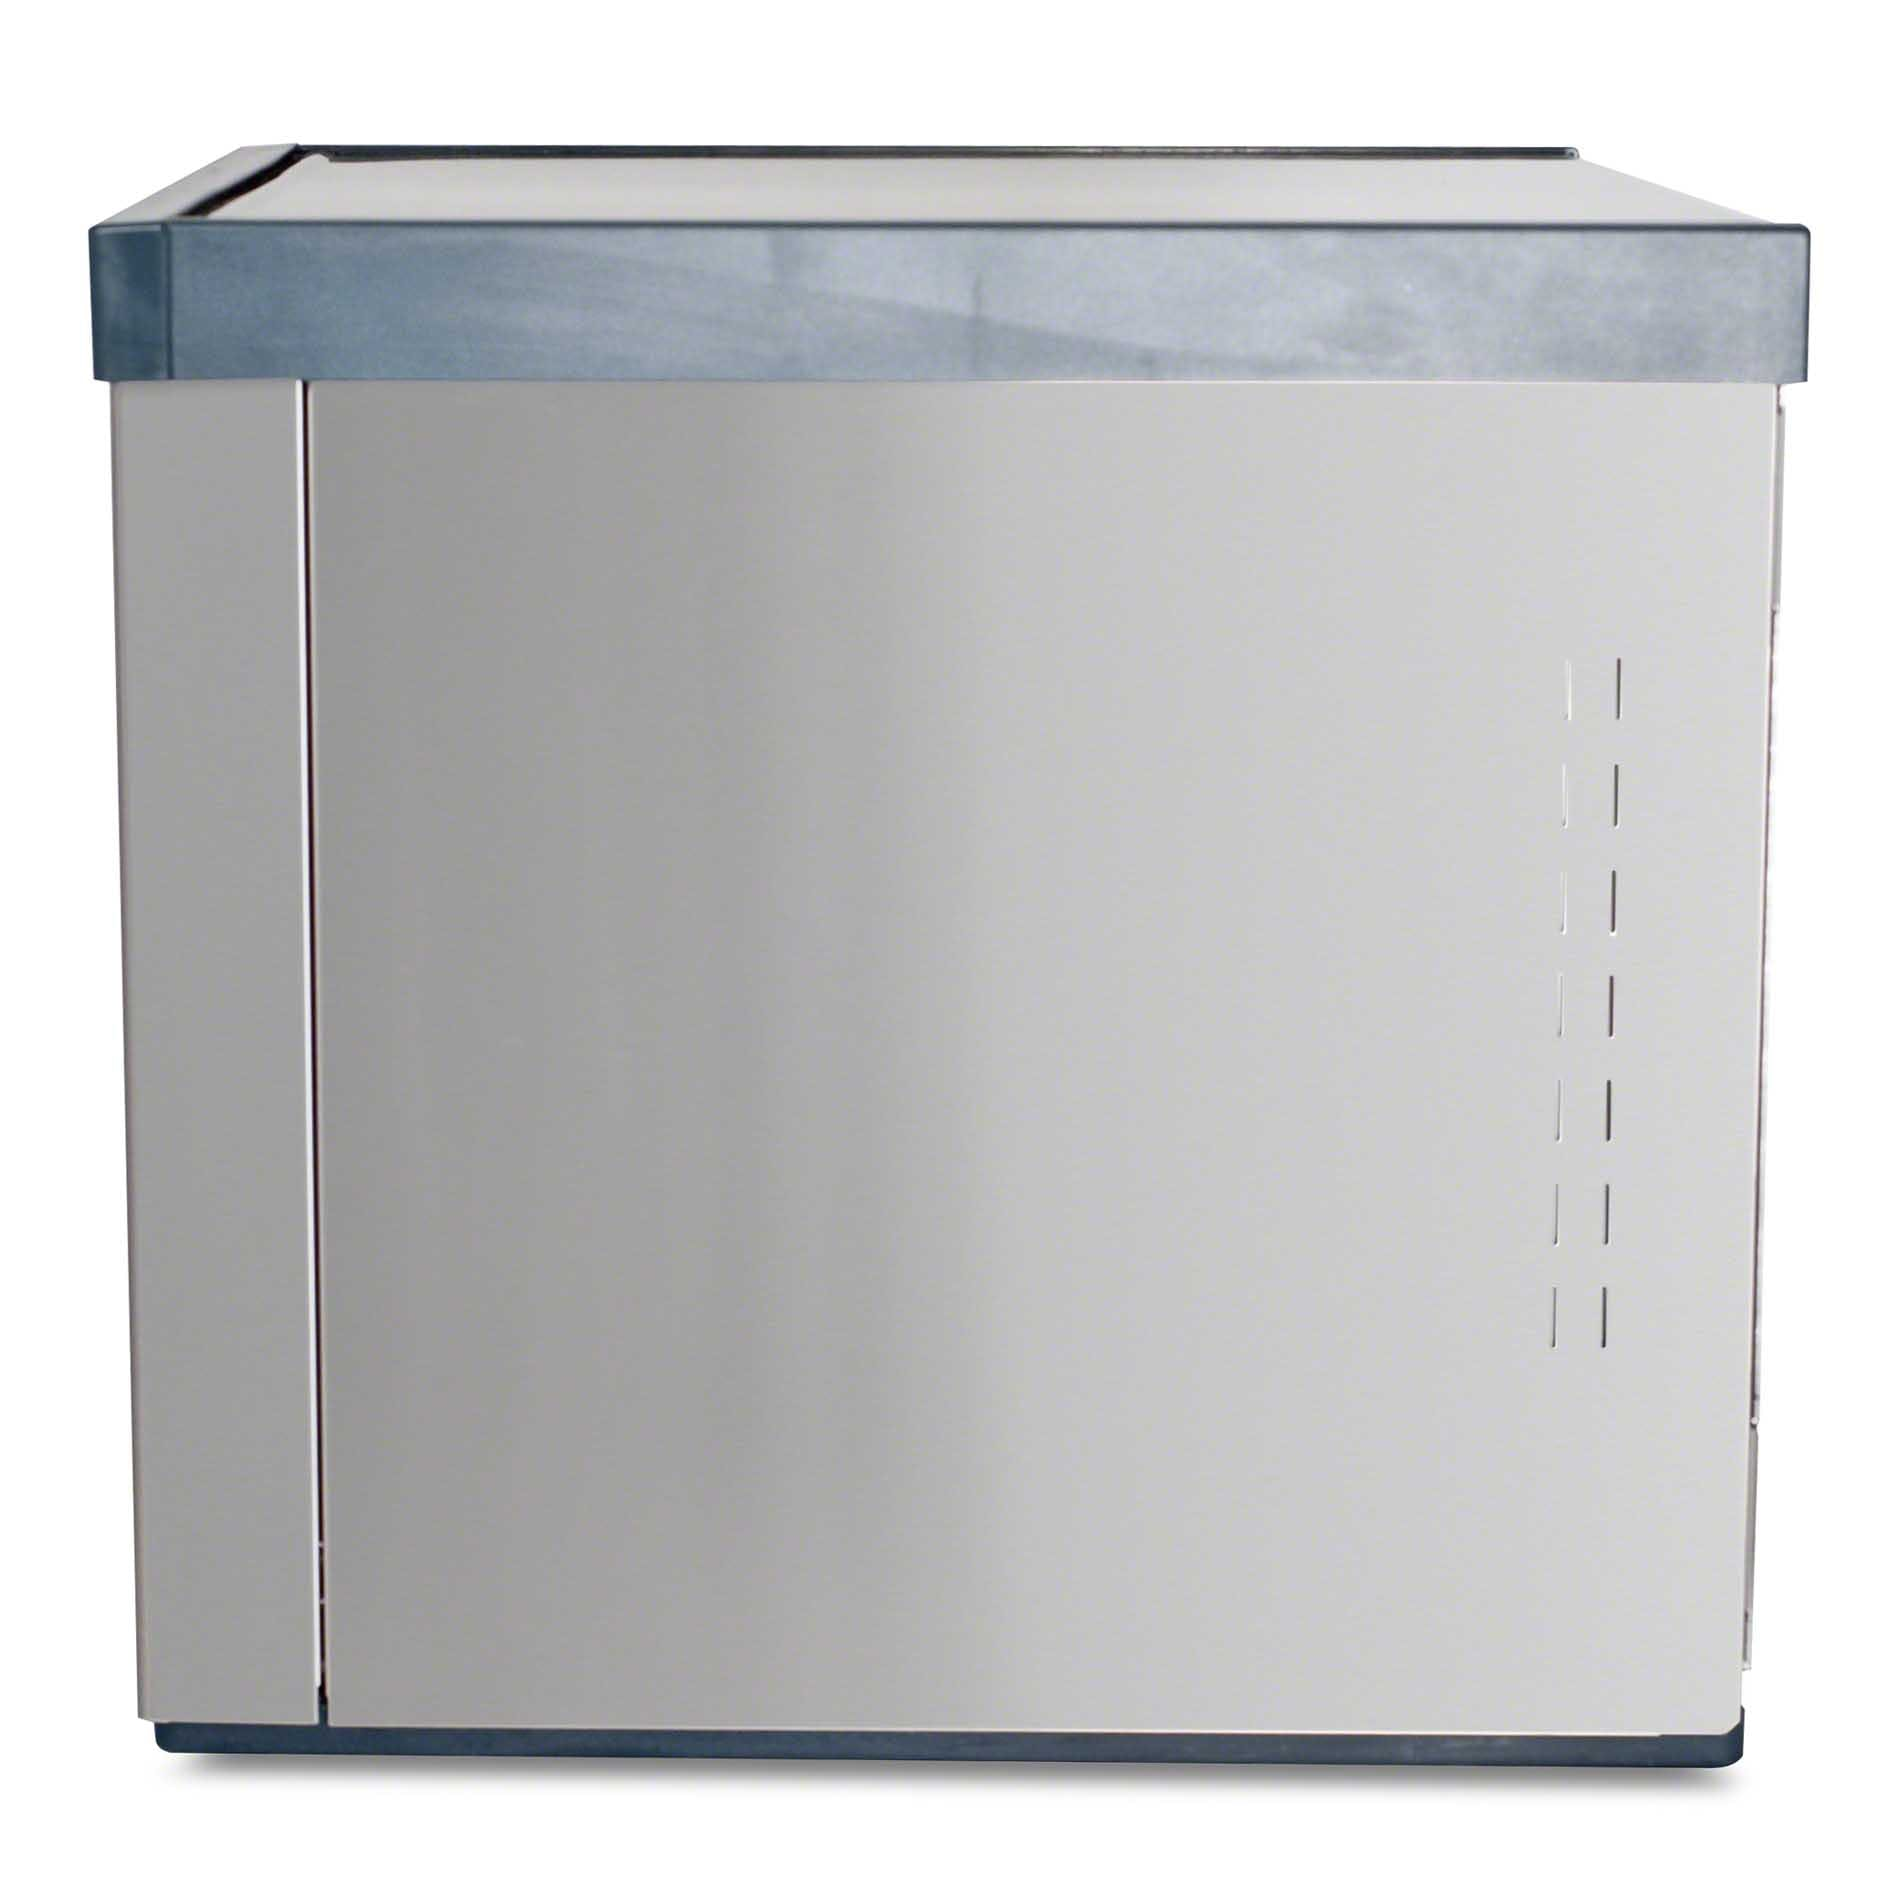 Scotsman - C0530SR-1A 511 lb Half Size Cube Ice Machine - Prodigy Series - sold by Food Service Warehouse